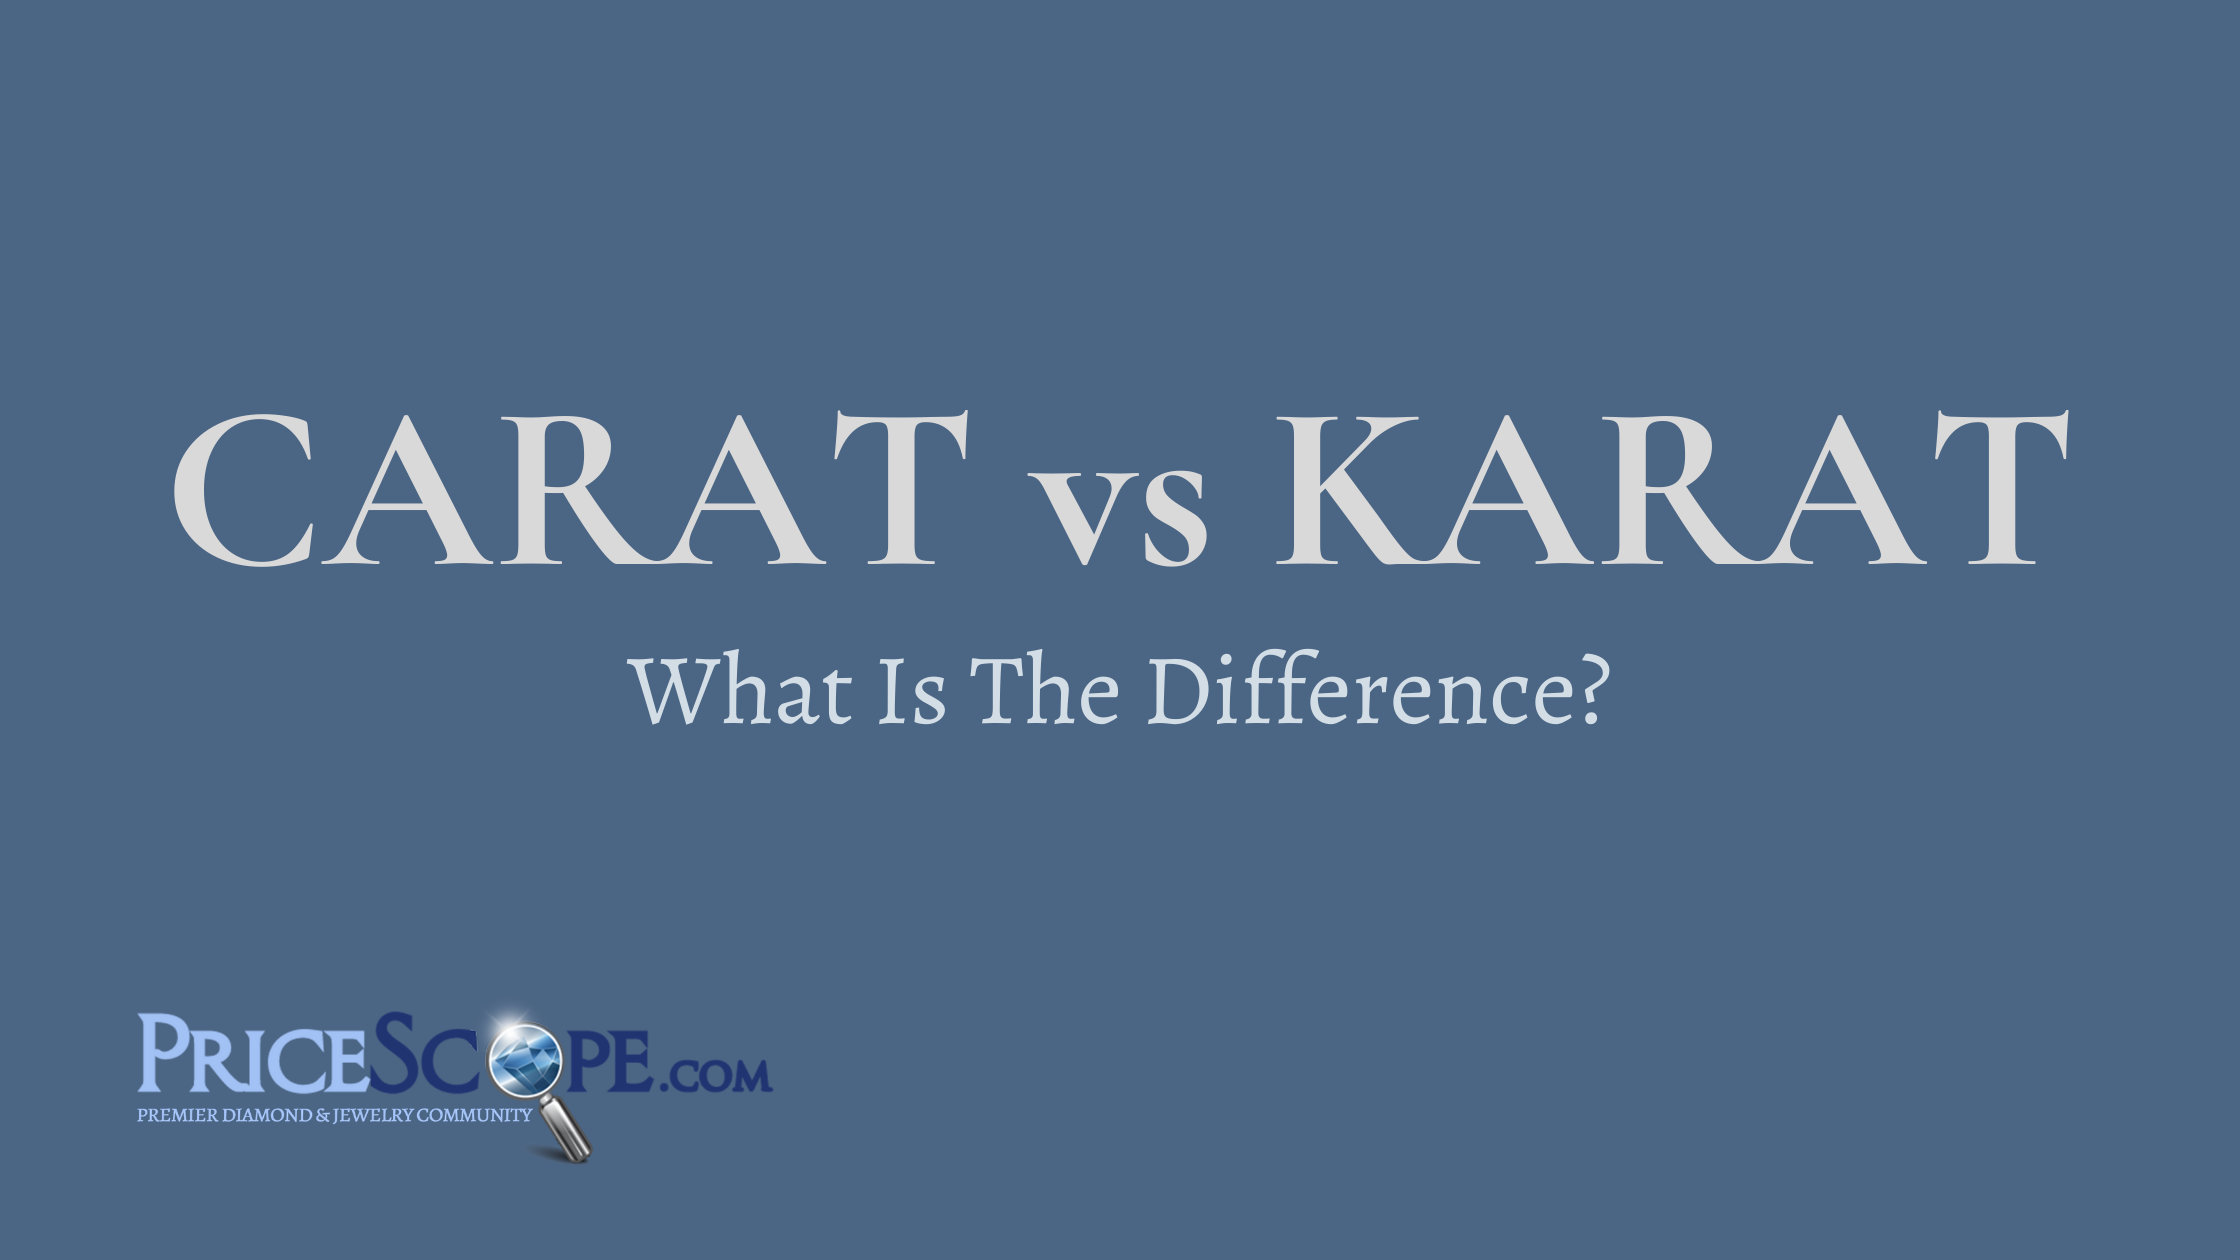 Carat vs Karat- What Is The Difference?